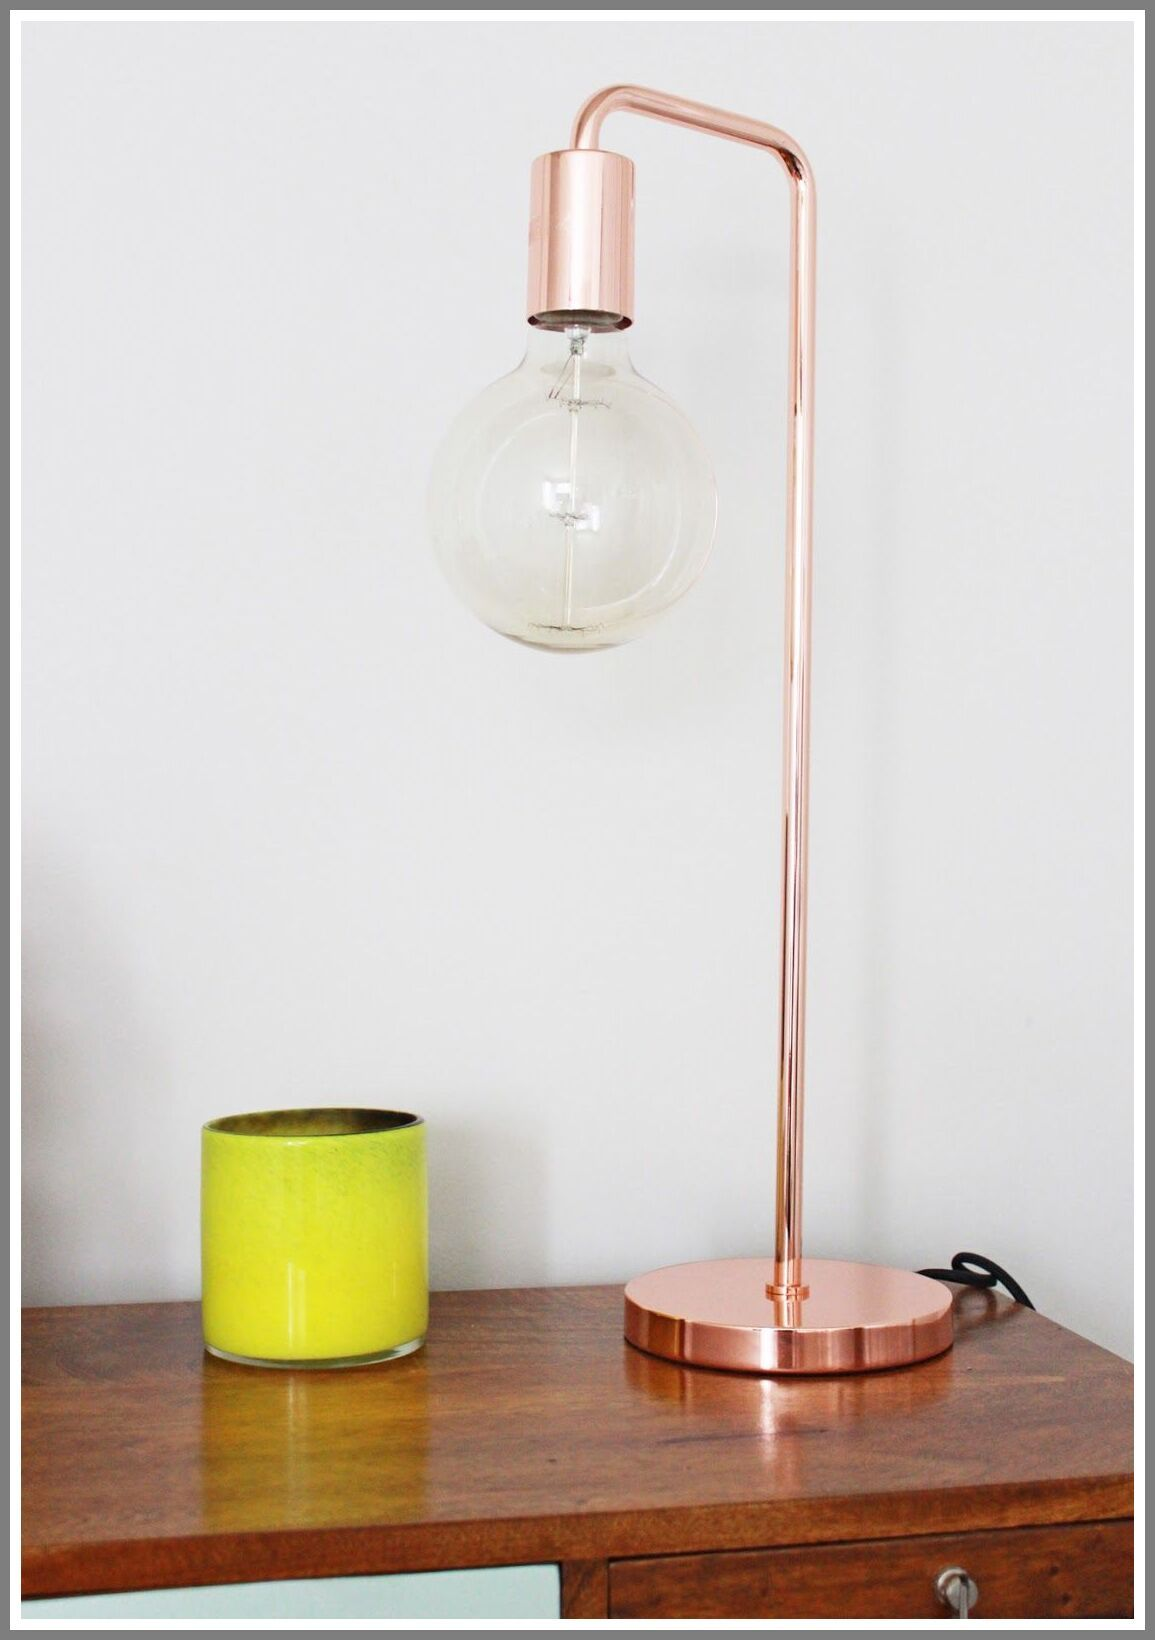 Bedroom Lamps Rose Gold Bedroom Lamps Rose Gold Please Click Link To Find More Reference Enjoy